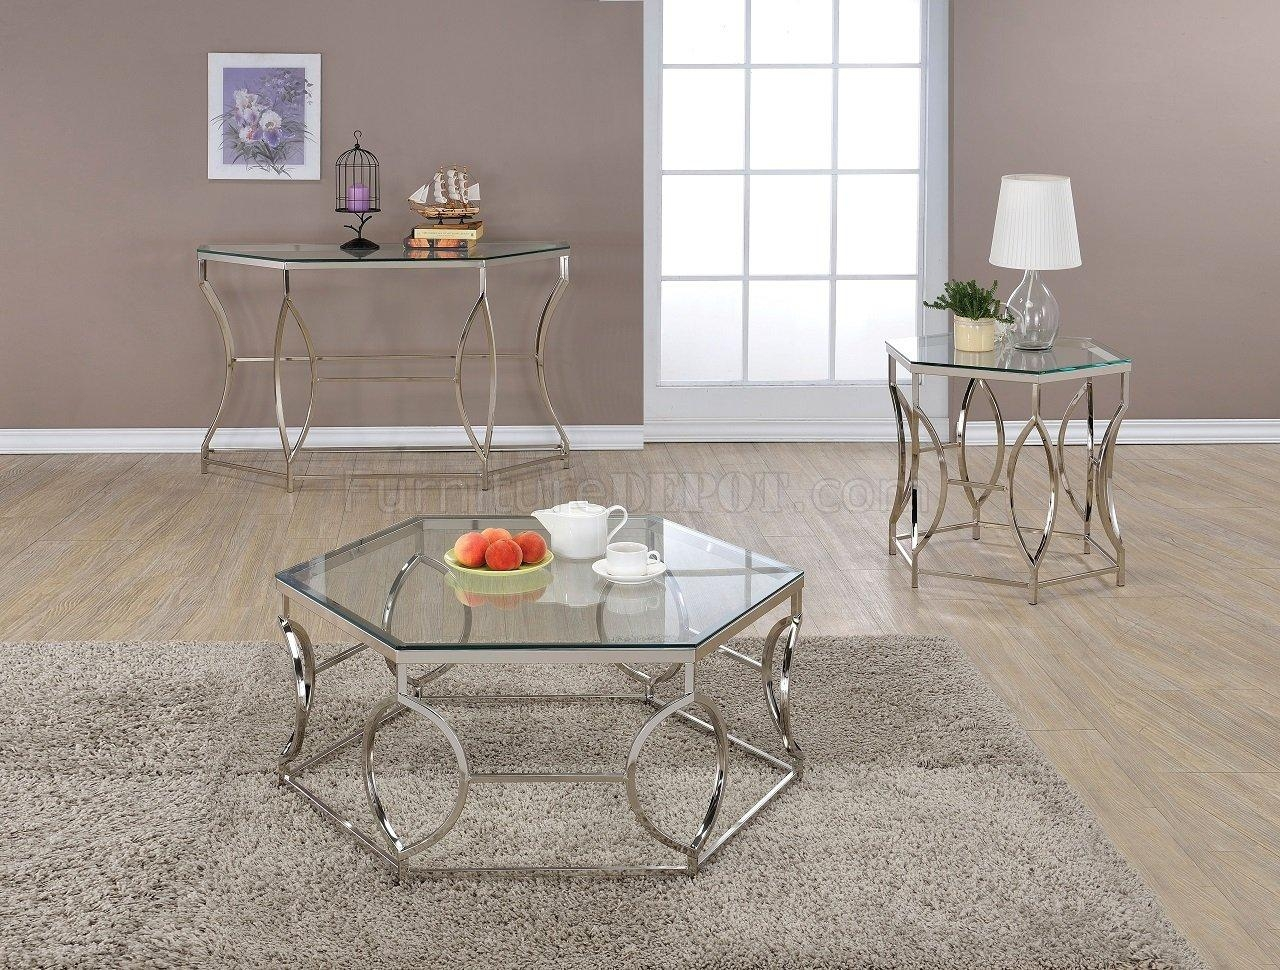 Farica 82200 3Pc Coffee Table Set In Chromeacme For Chrome Sofa Tables (Image 8 of 20)